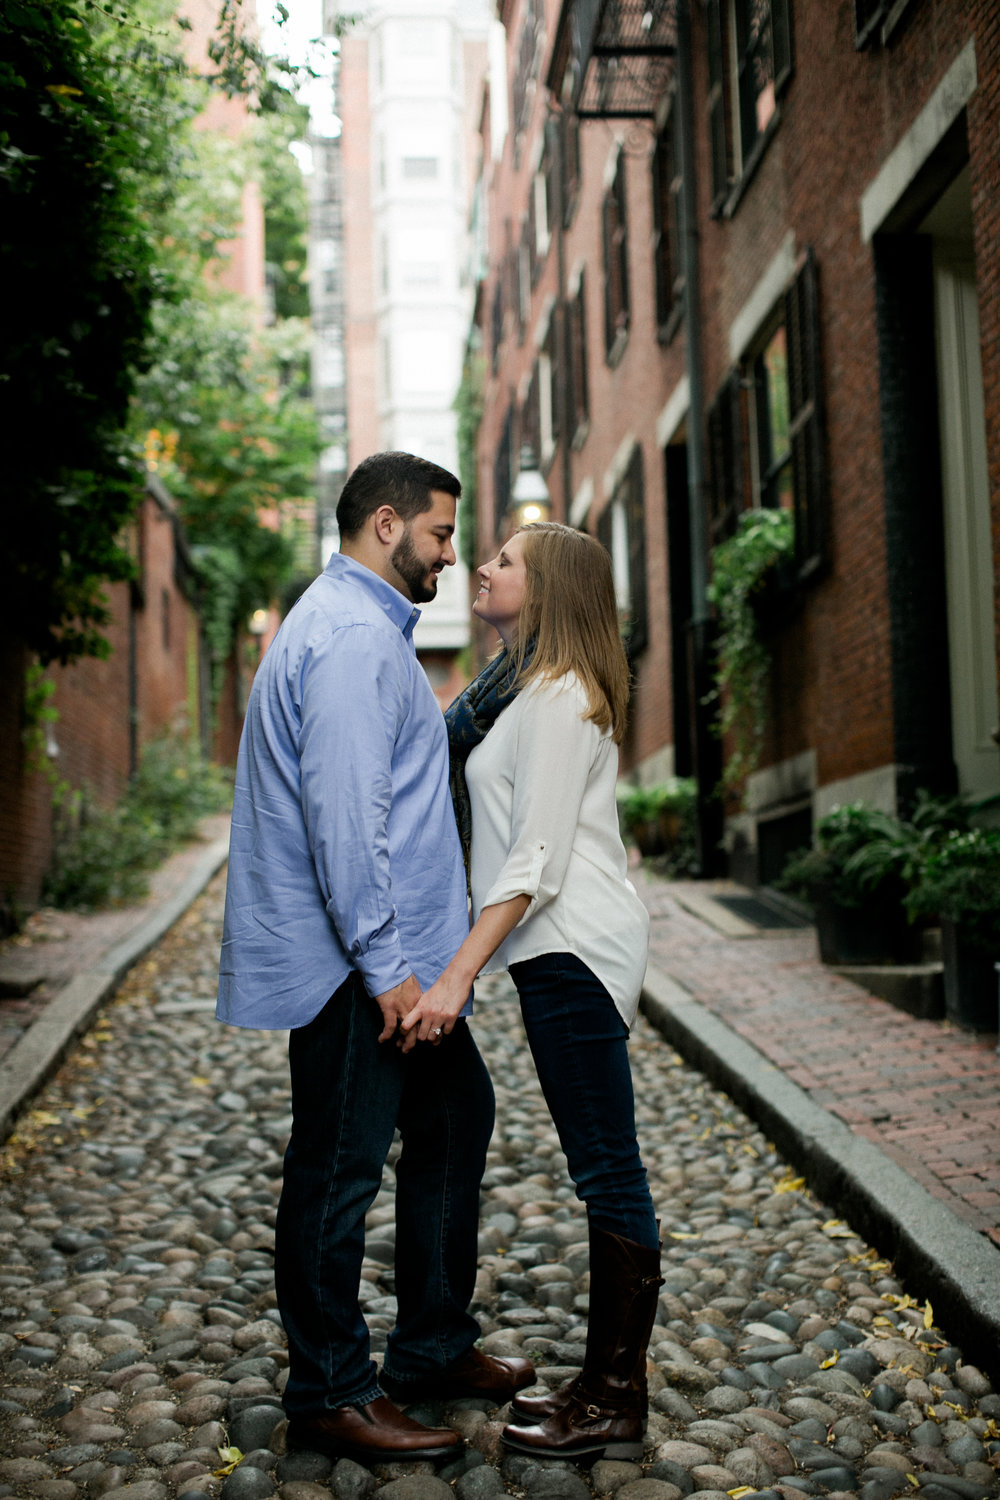 M+Q_Engagement (58 of 159).jpg